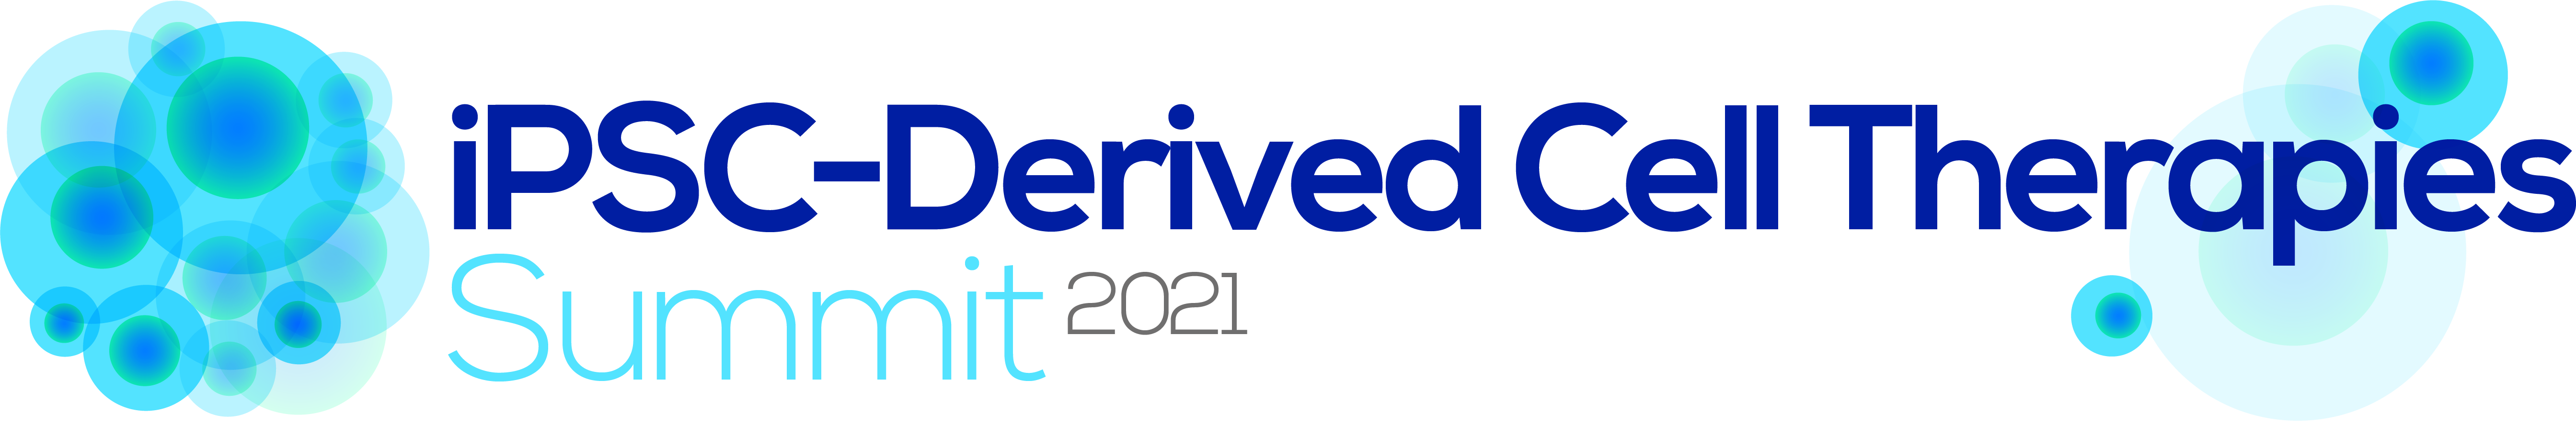 iPSC Derived Cell Therapies Summit 2021 logo